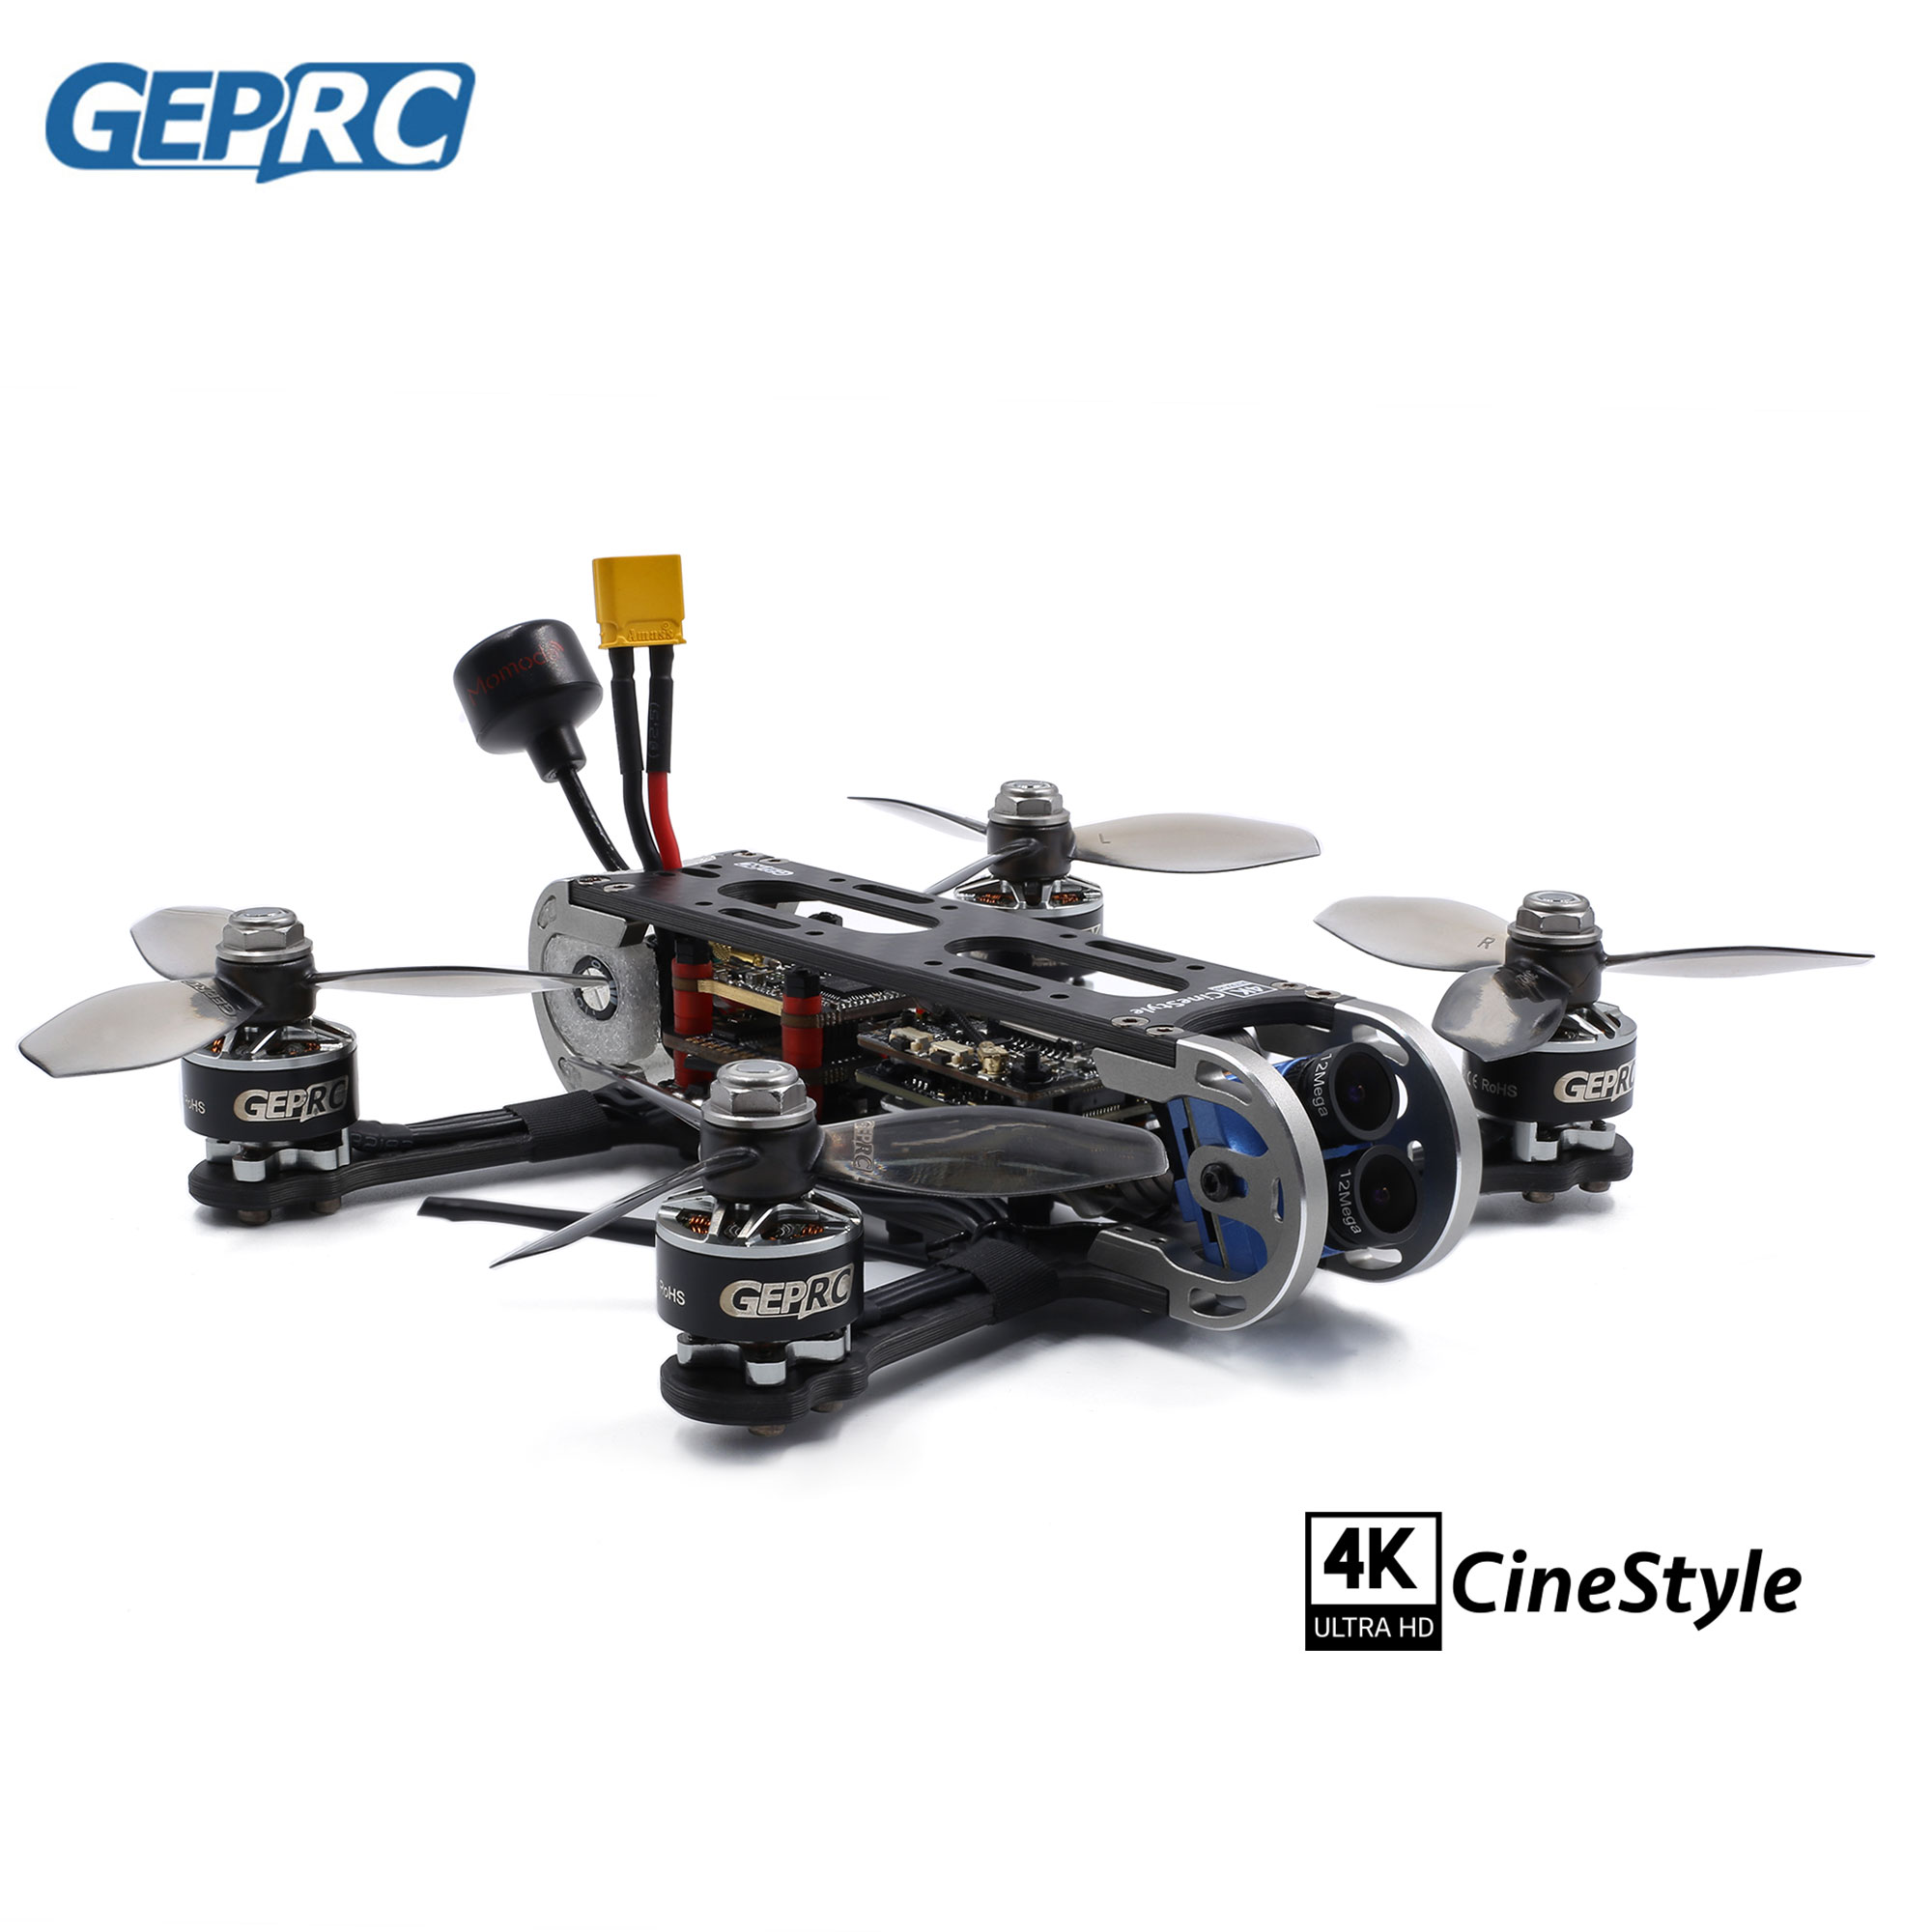 GEPRC CineStyle 4K 144mm F7 Dual Gyro Flight Controller 35A ESC 1507 3600KV Brushless Motor DIY FPV Racing Drone